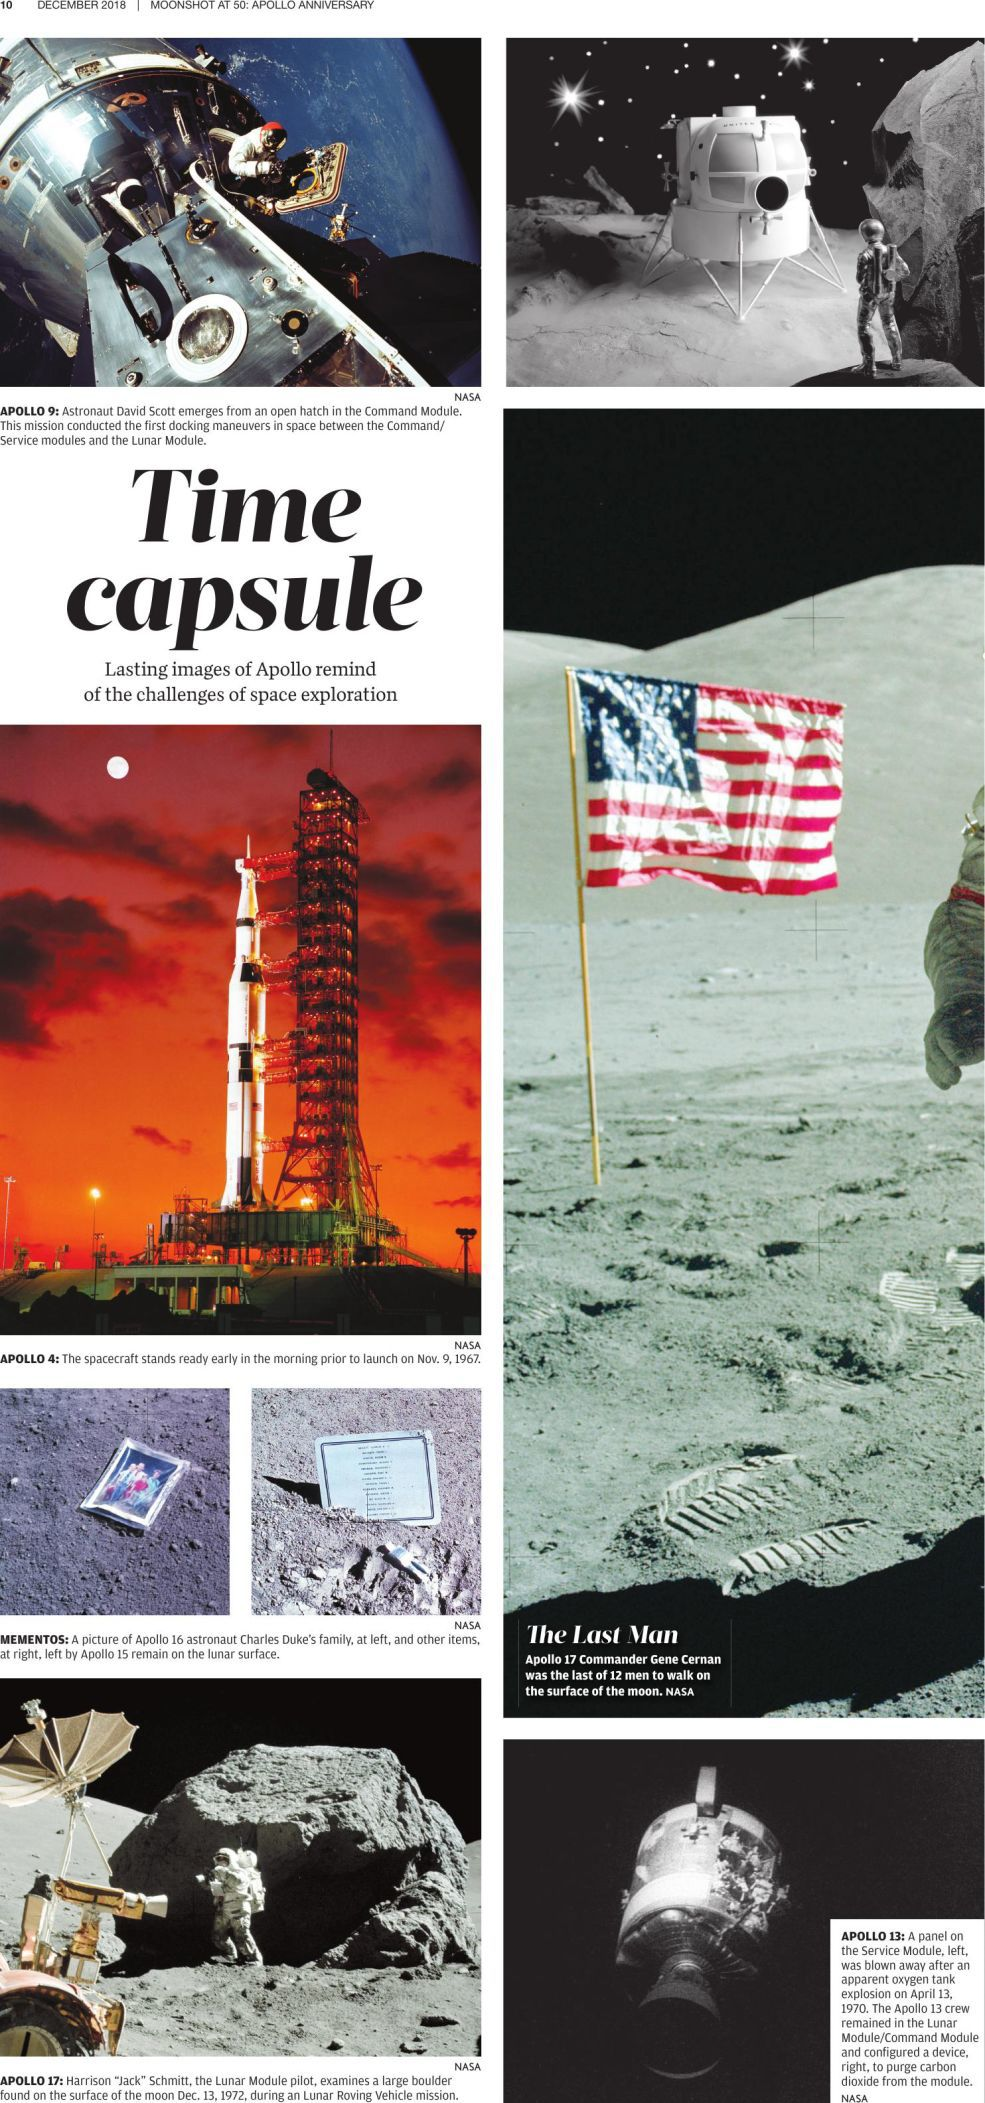 Iconic images from the moon